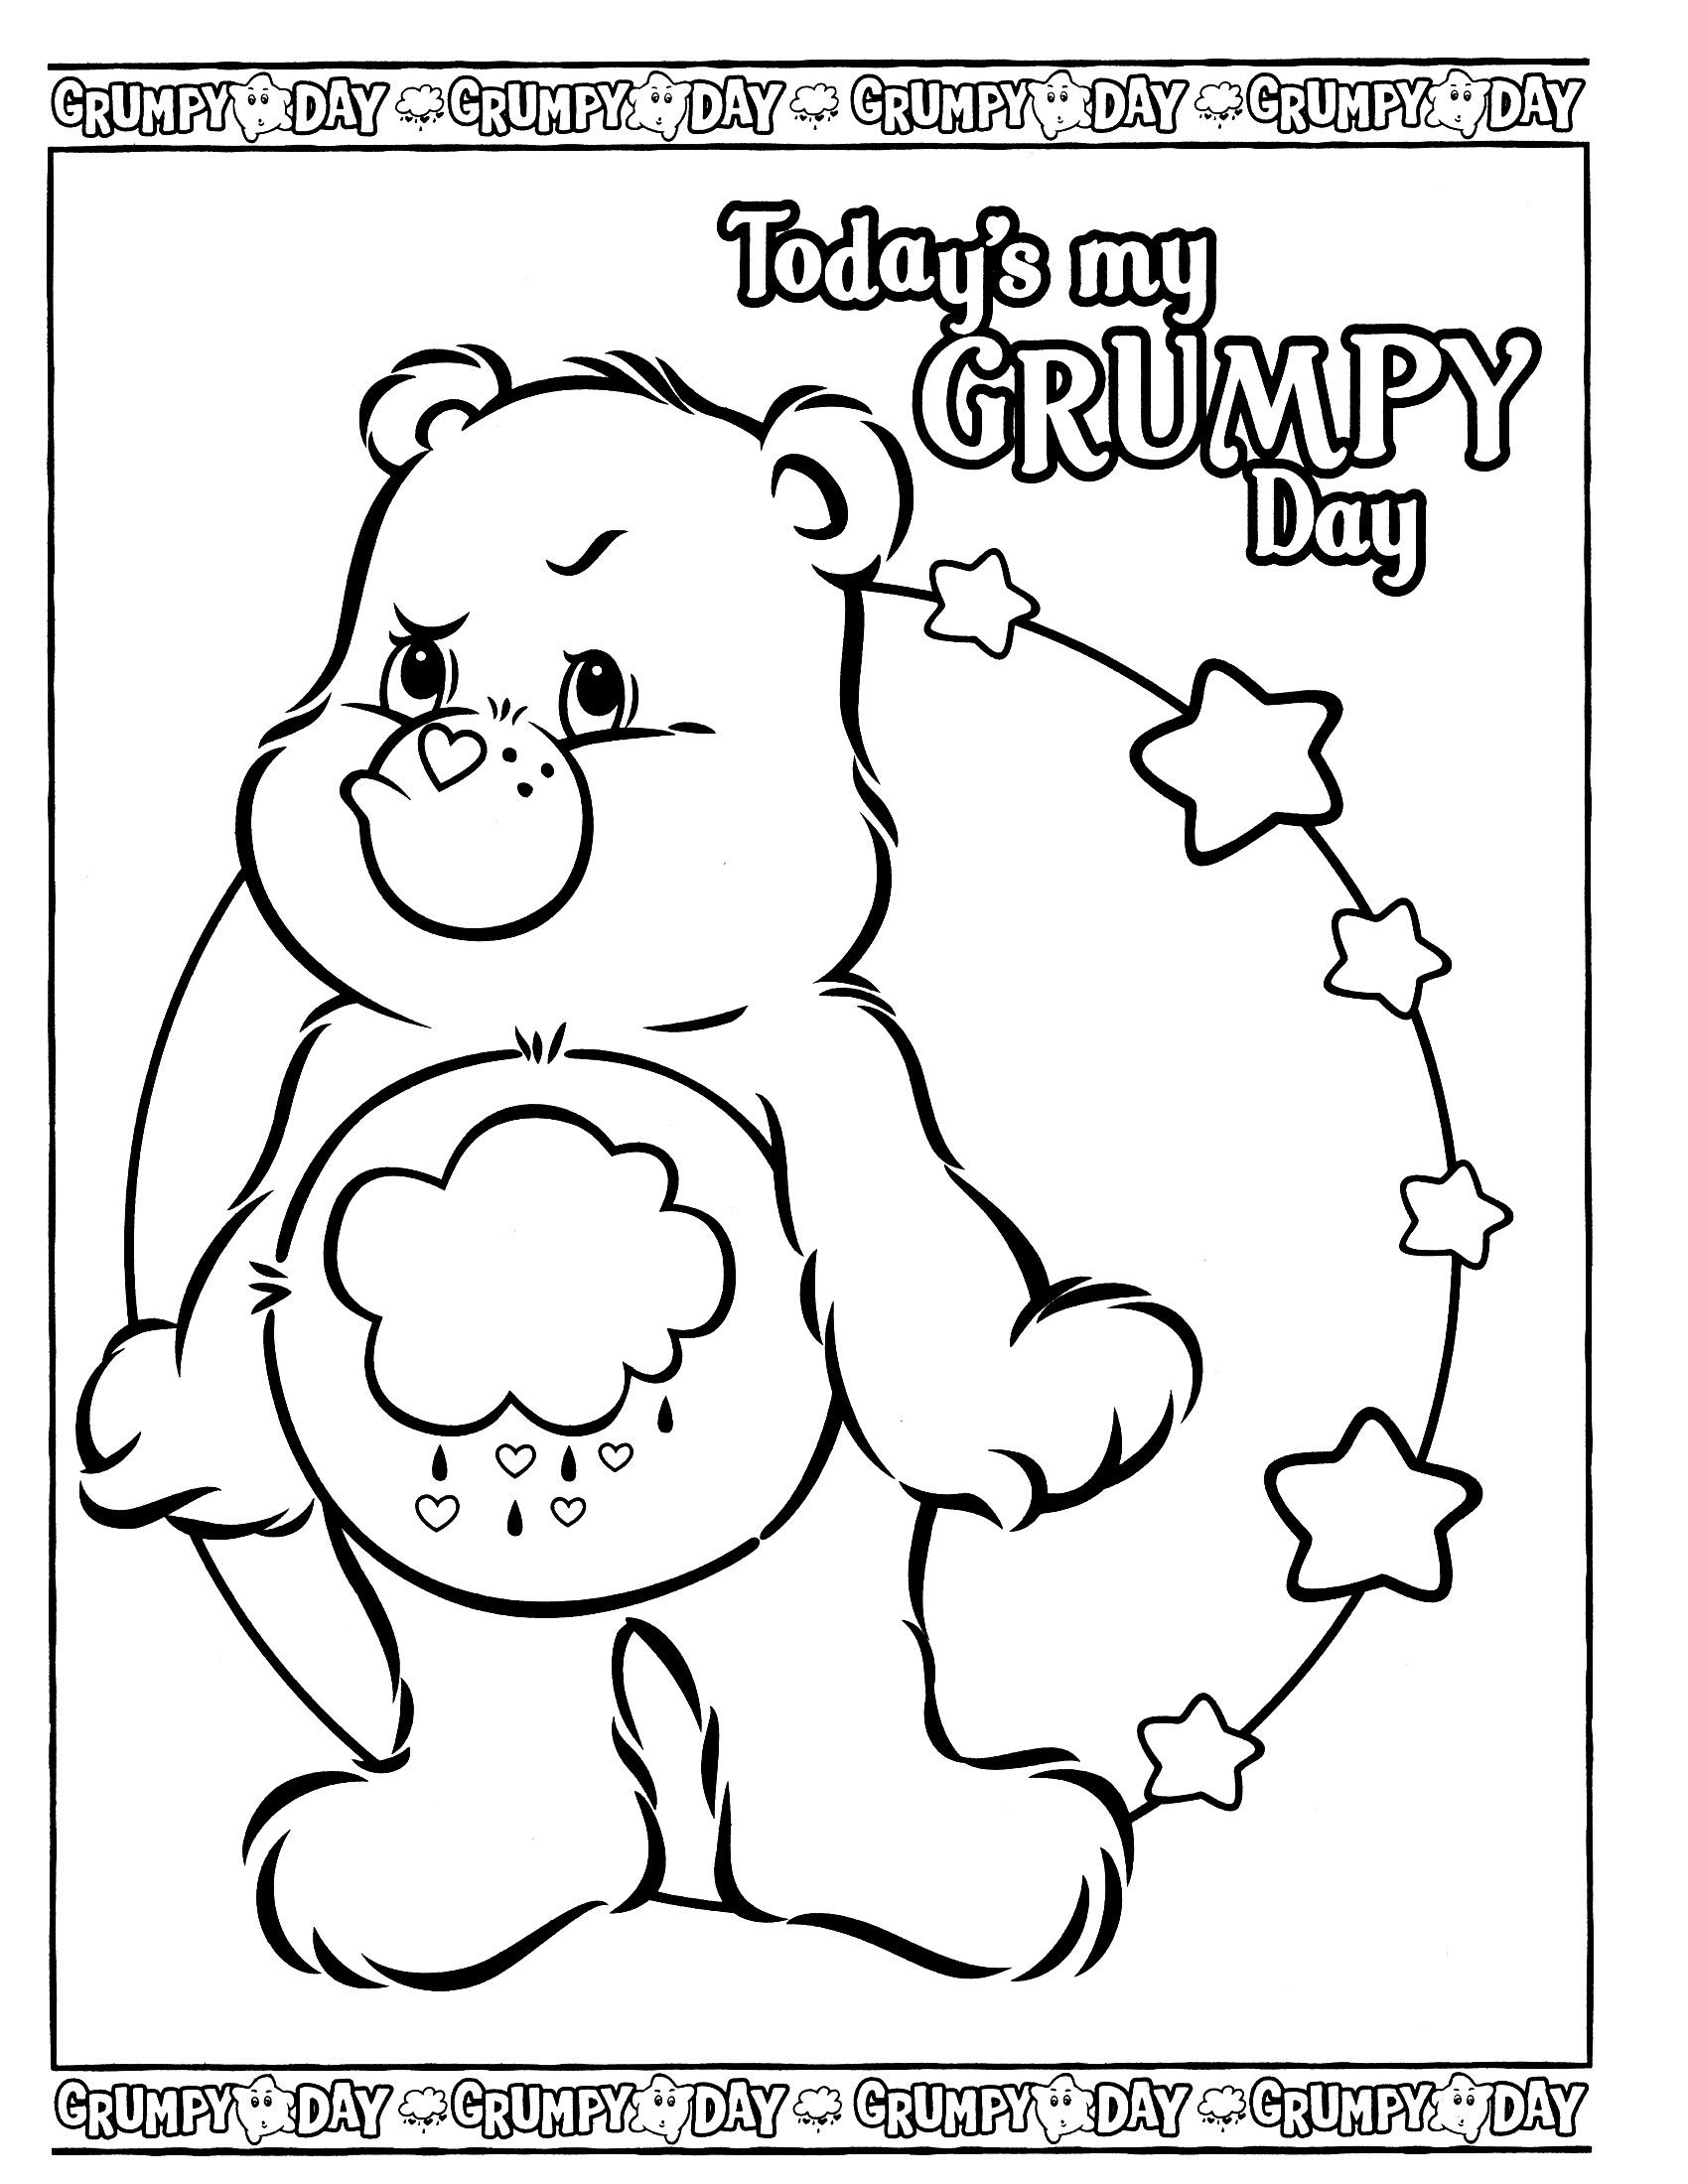 coloring pages of grumpy bear - photo#12